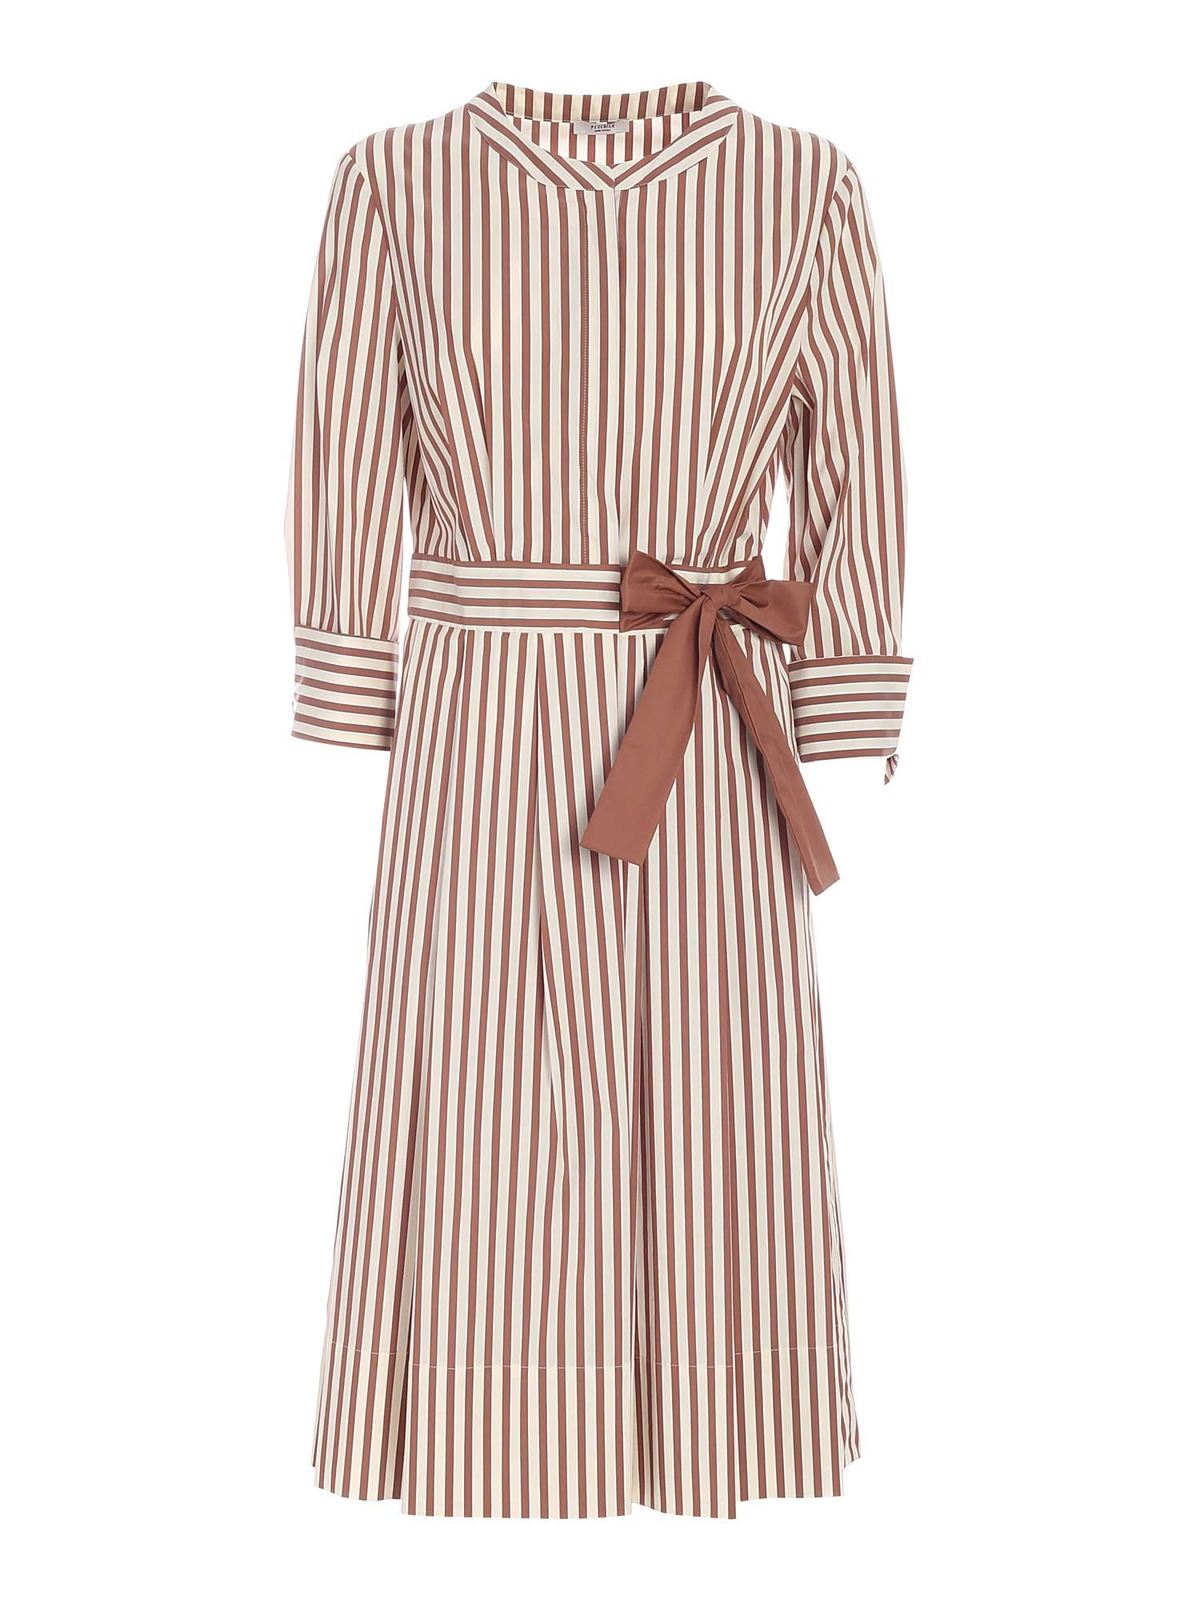 Peserico BOW STRIPED DRESS IN WHITE AND BROWN